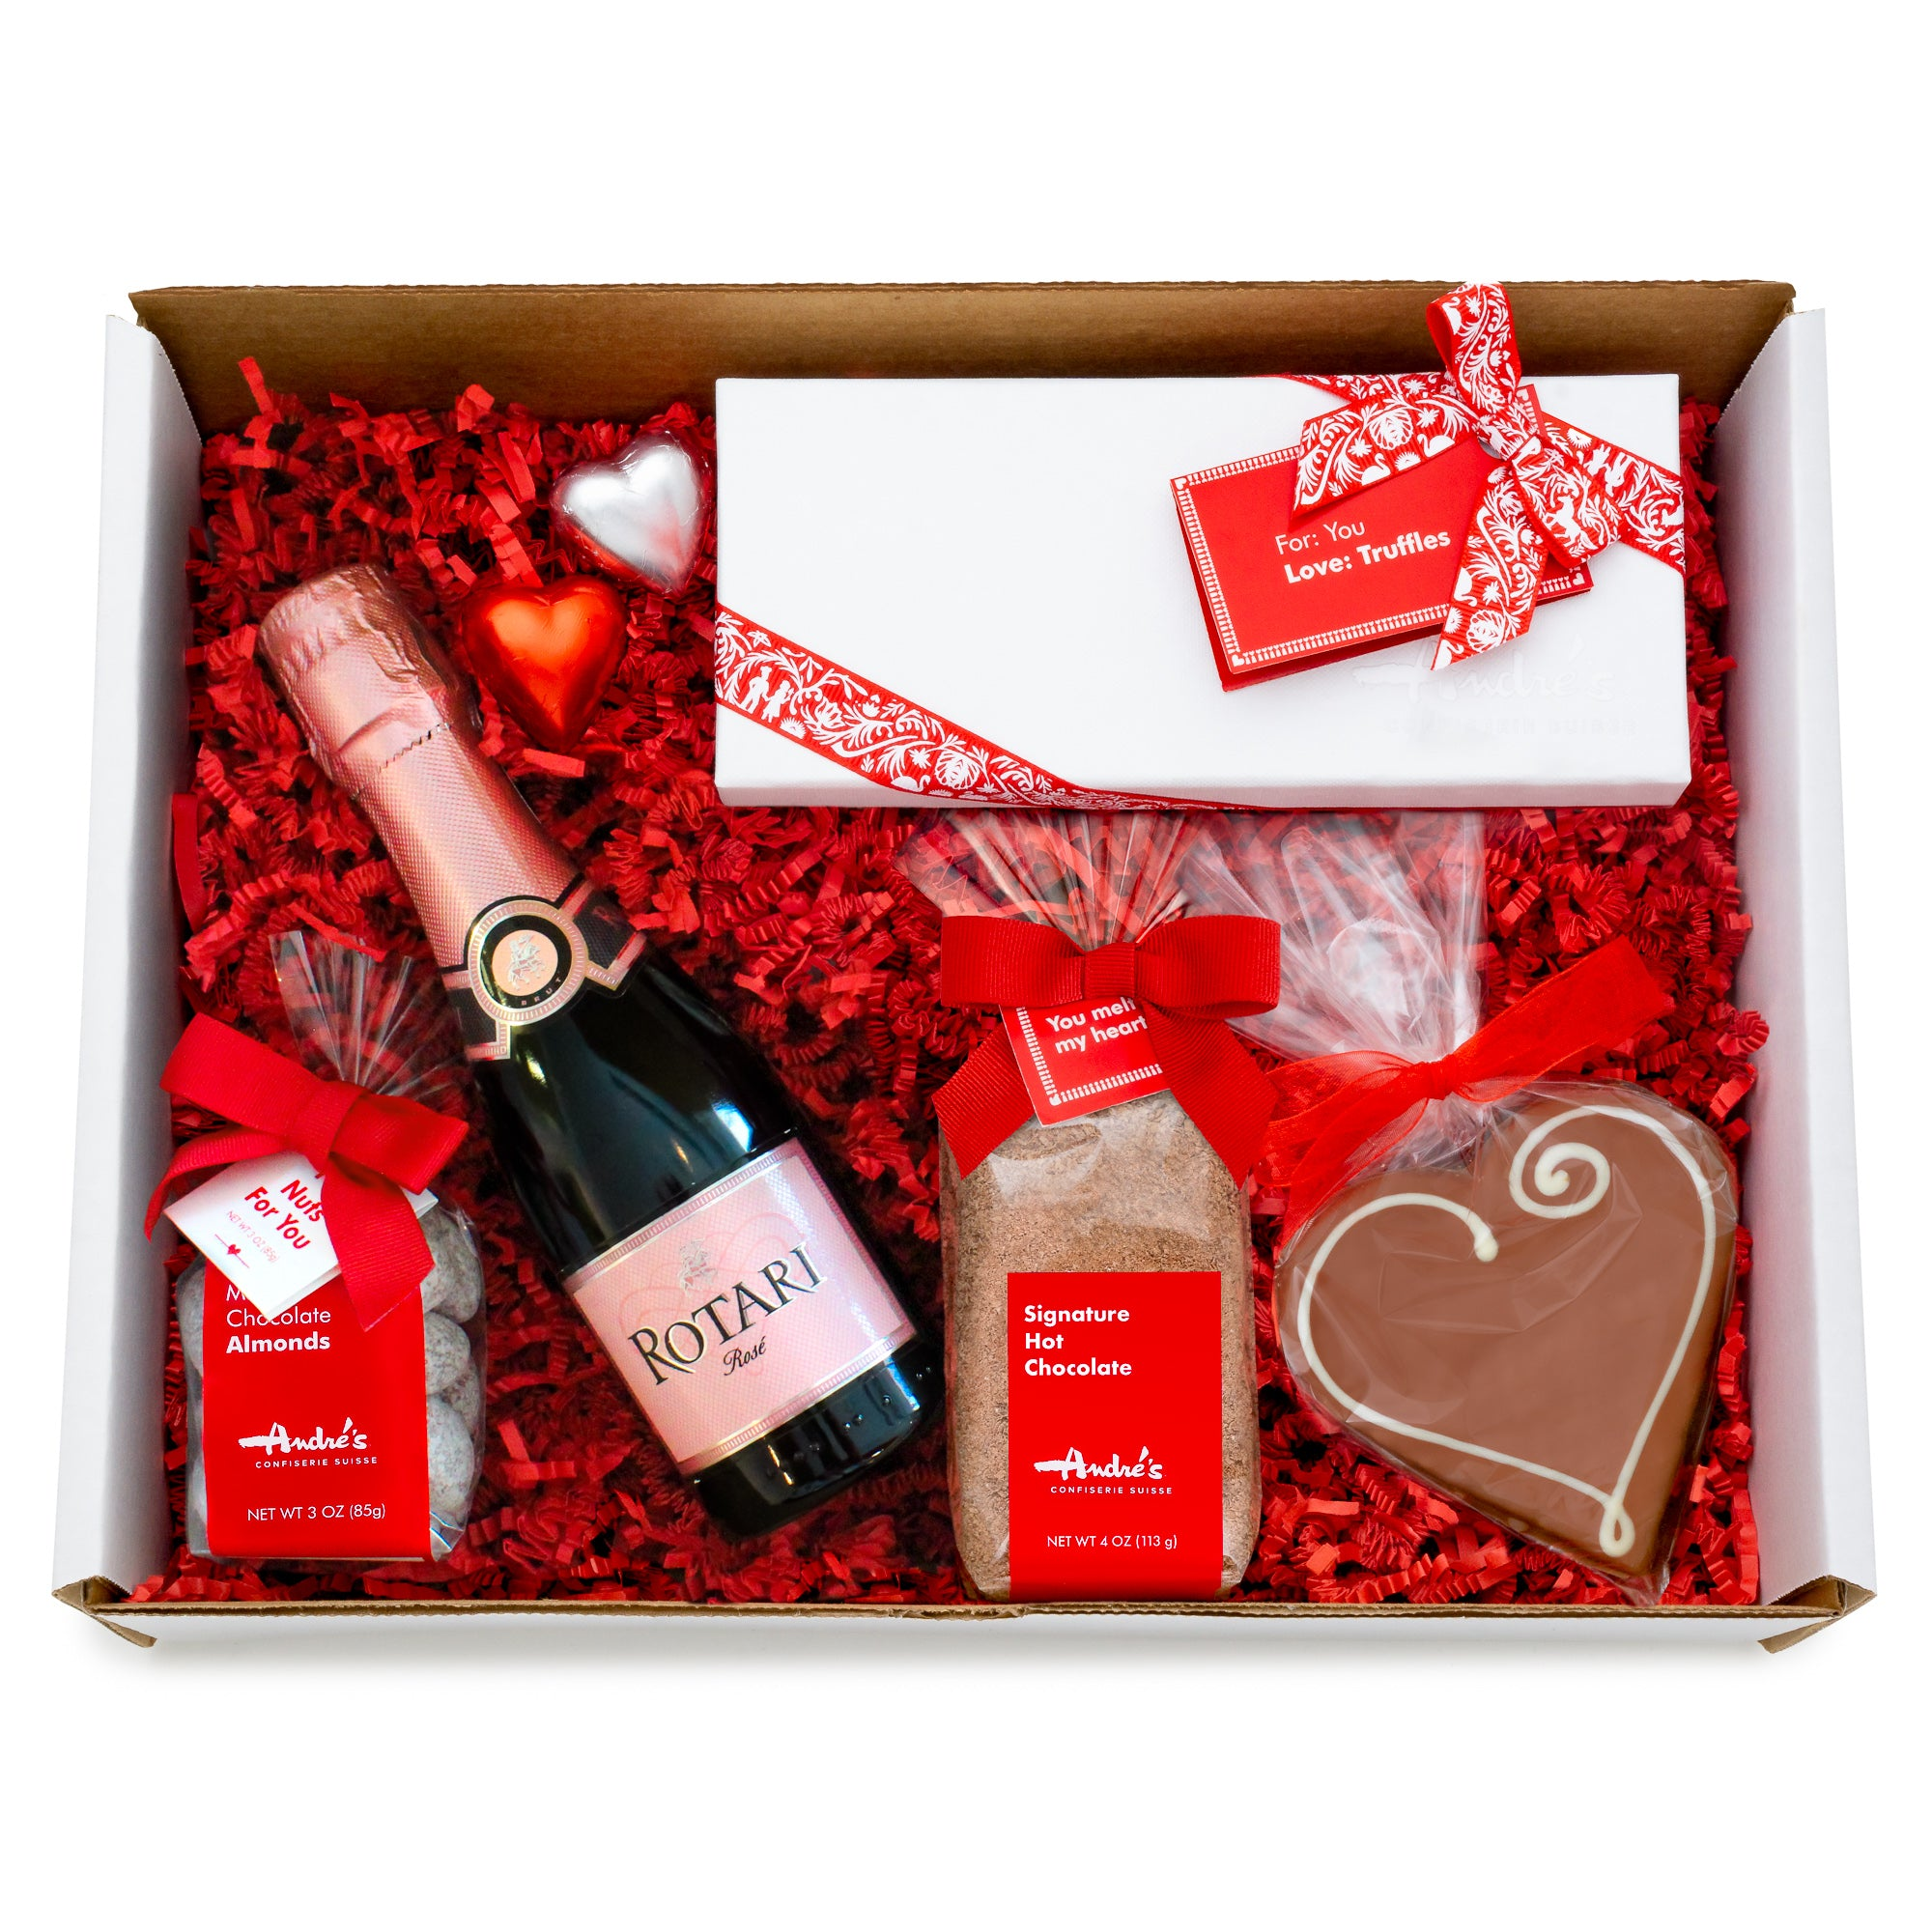 Liquor + Chocolate Date Night Gift Boxes (4 options, pick up only)